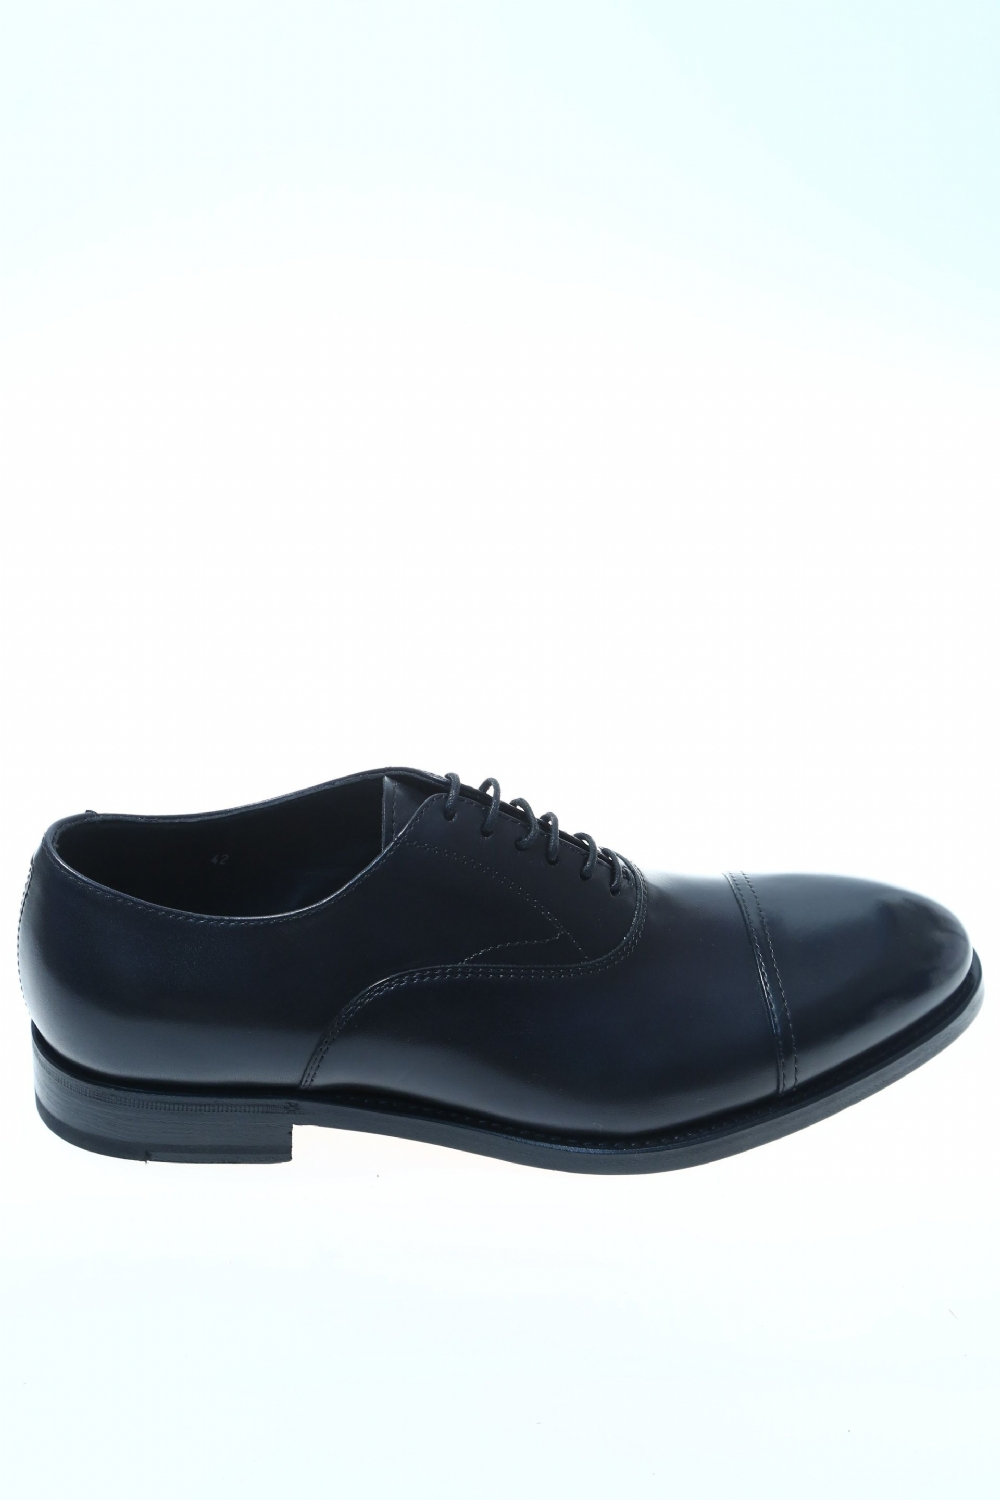 Leather Black Classic lace up shoe HENDERSON